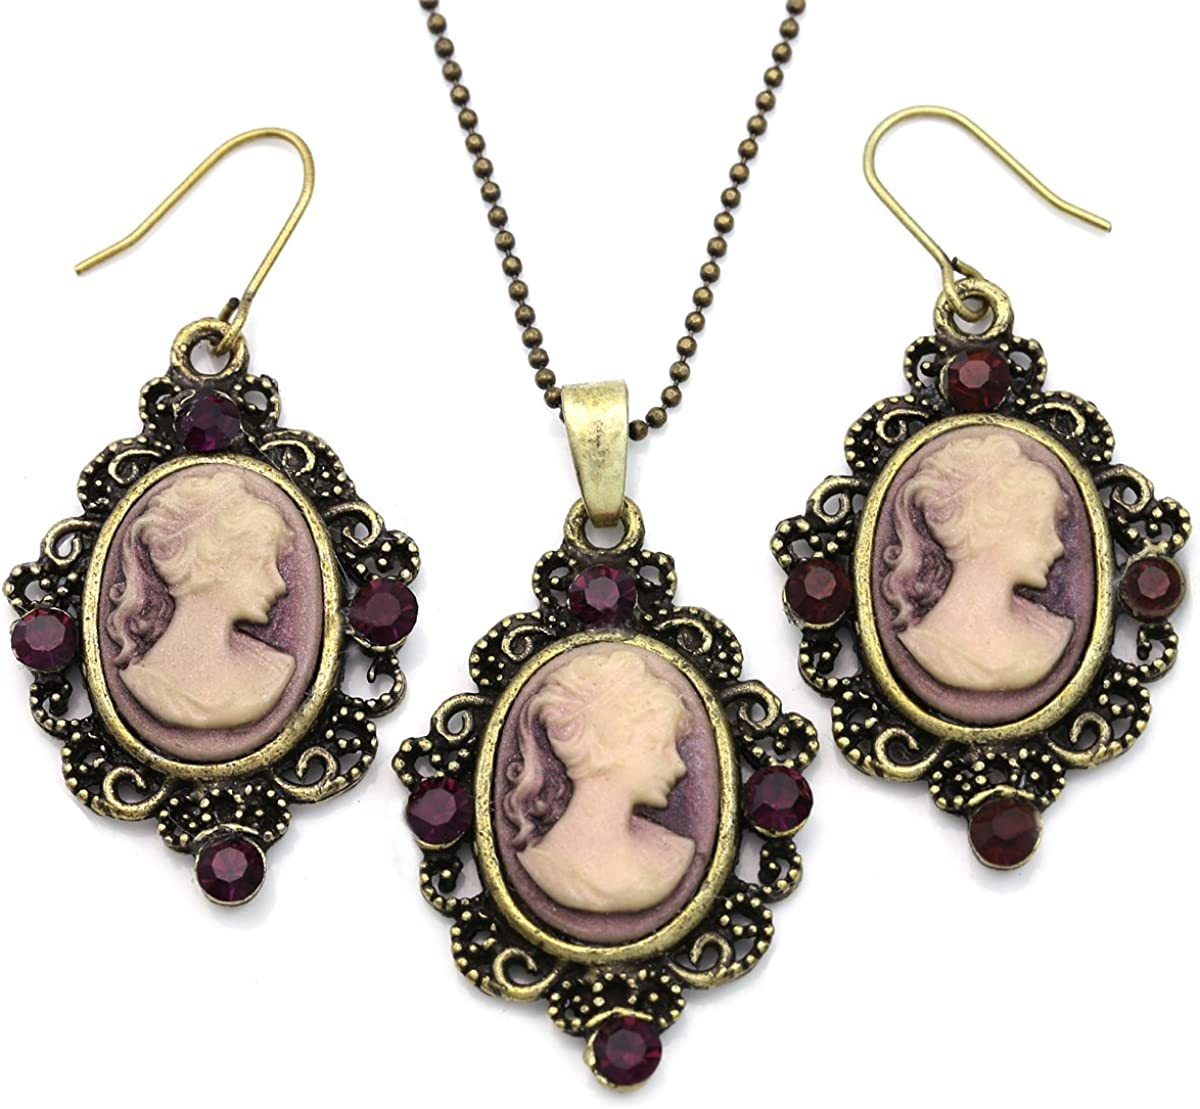 Soulbreezecollection Cameo Necklace Fashion Jewelry Set Pendant Charm Dangle Drop Earrings Gift for Women